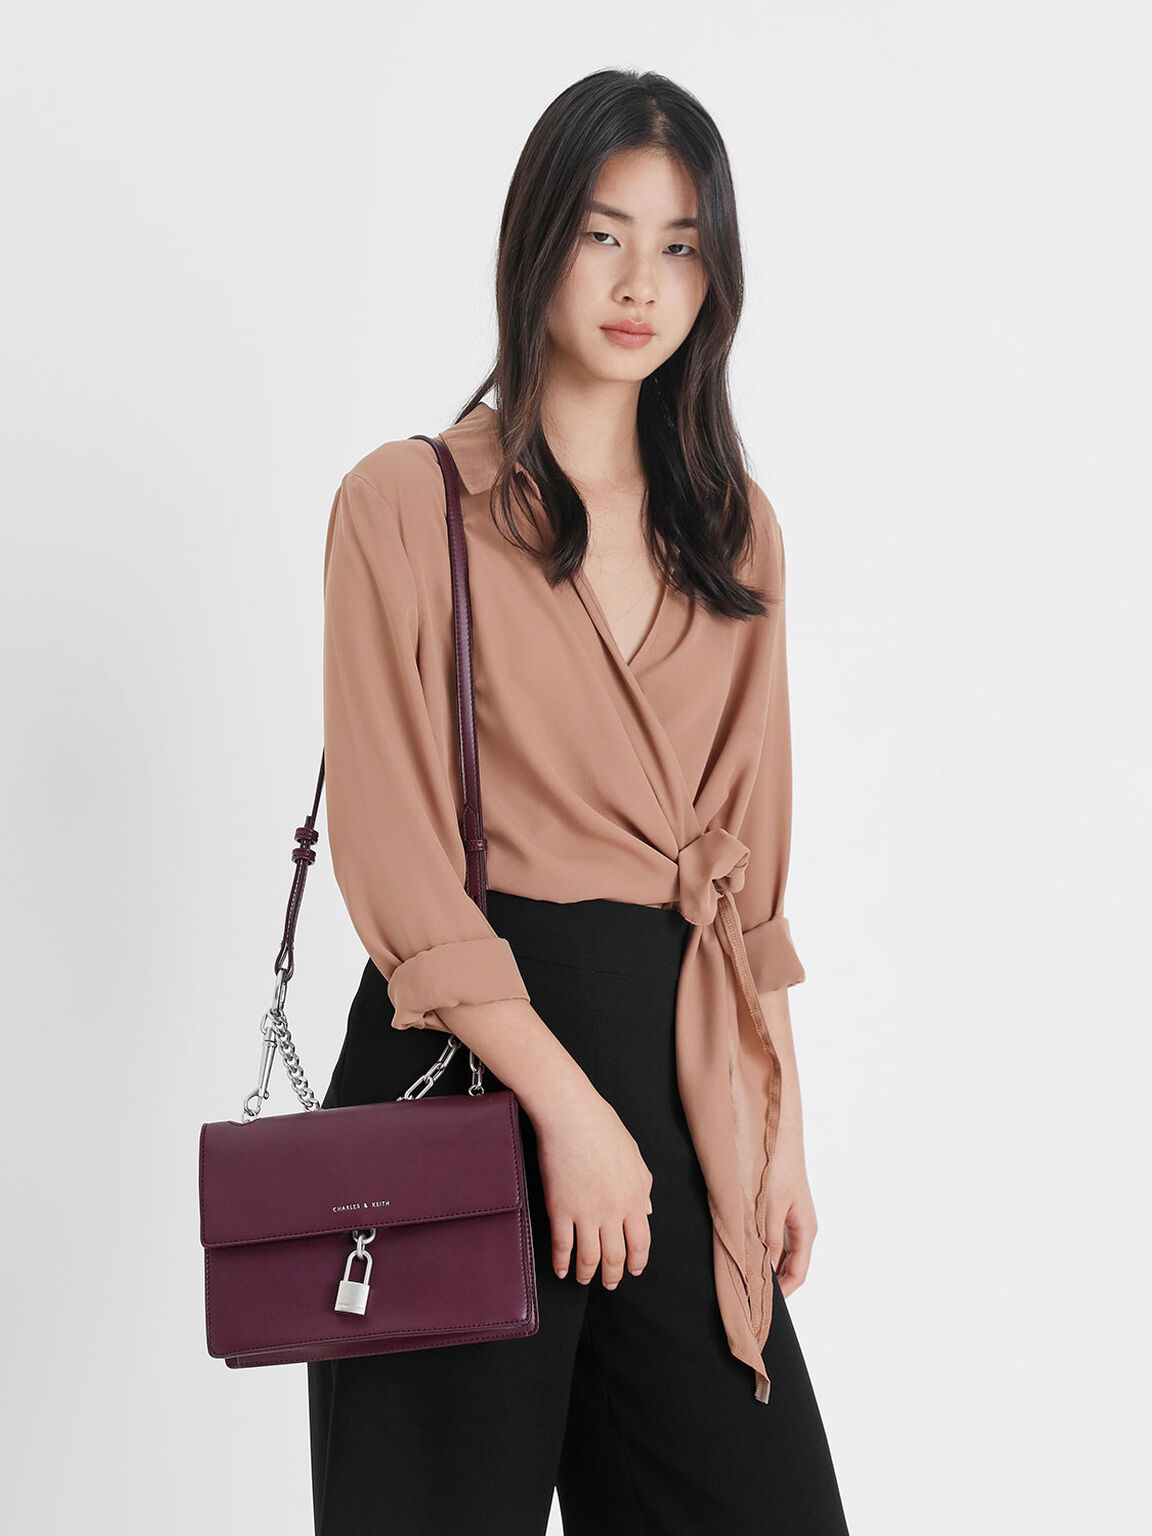 Padlock Shoulder Bag, Prune, hi-res